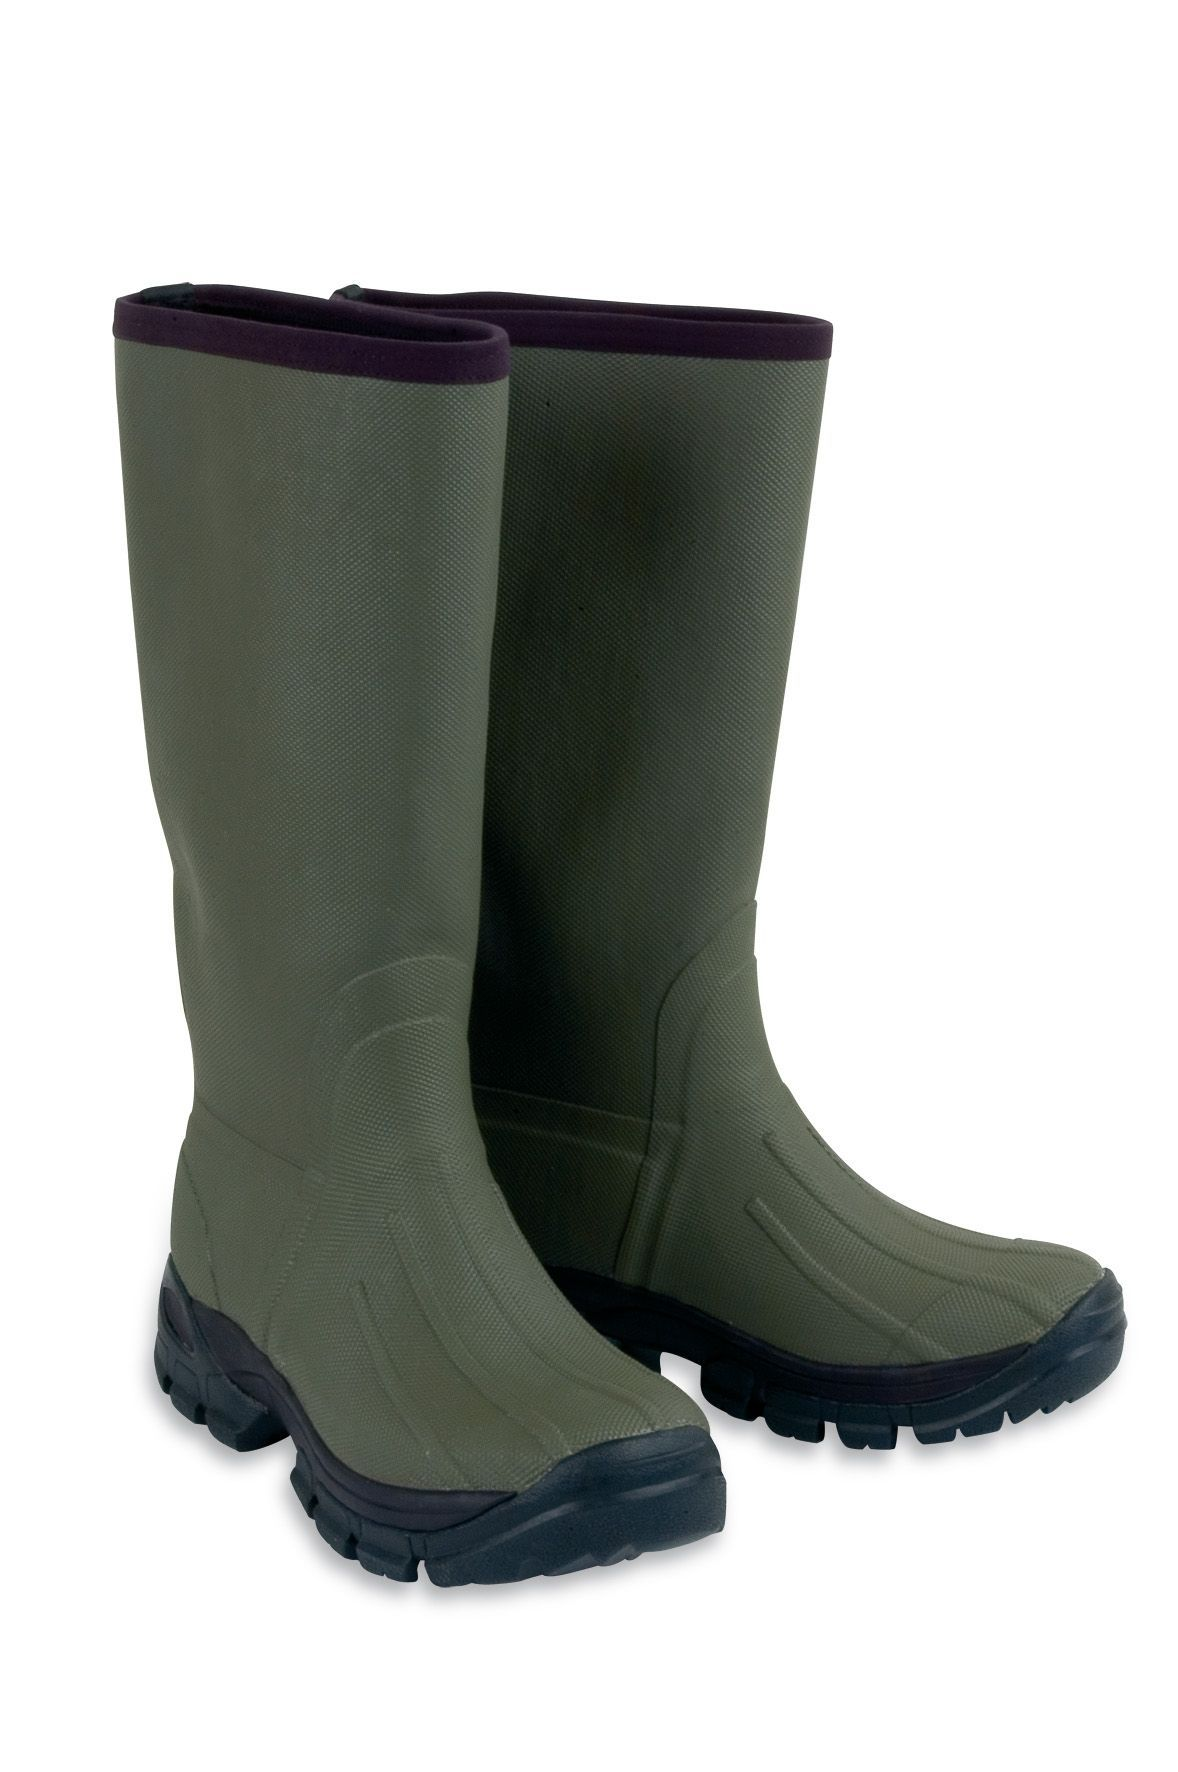 8ef21fd5021 Shimano Rubber Fishing Boot - masses of these in Peter Grimes which weer a  nightmare to pull off!  fishingboots